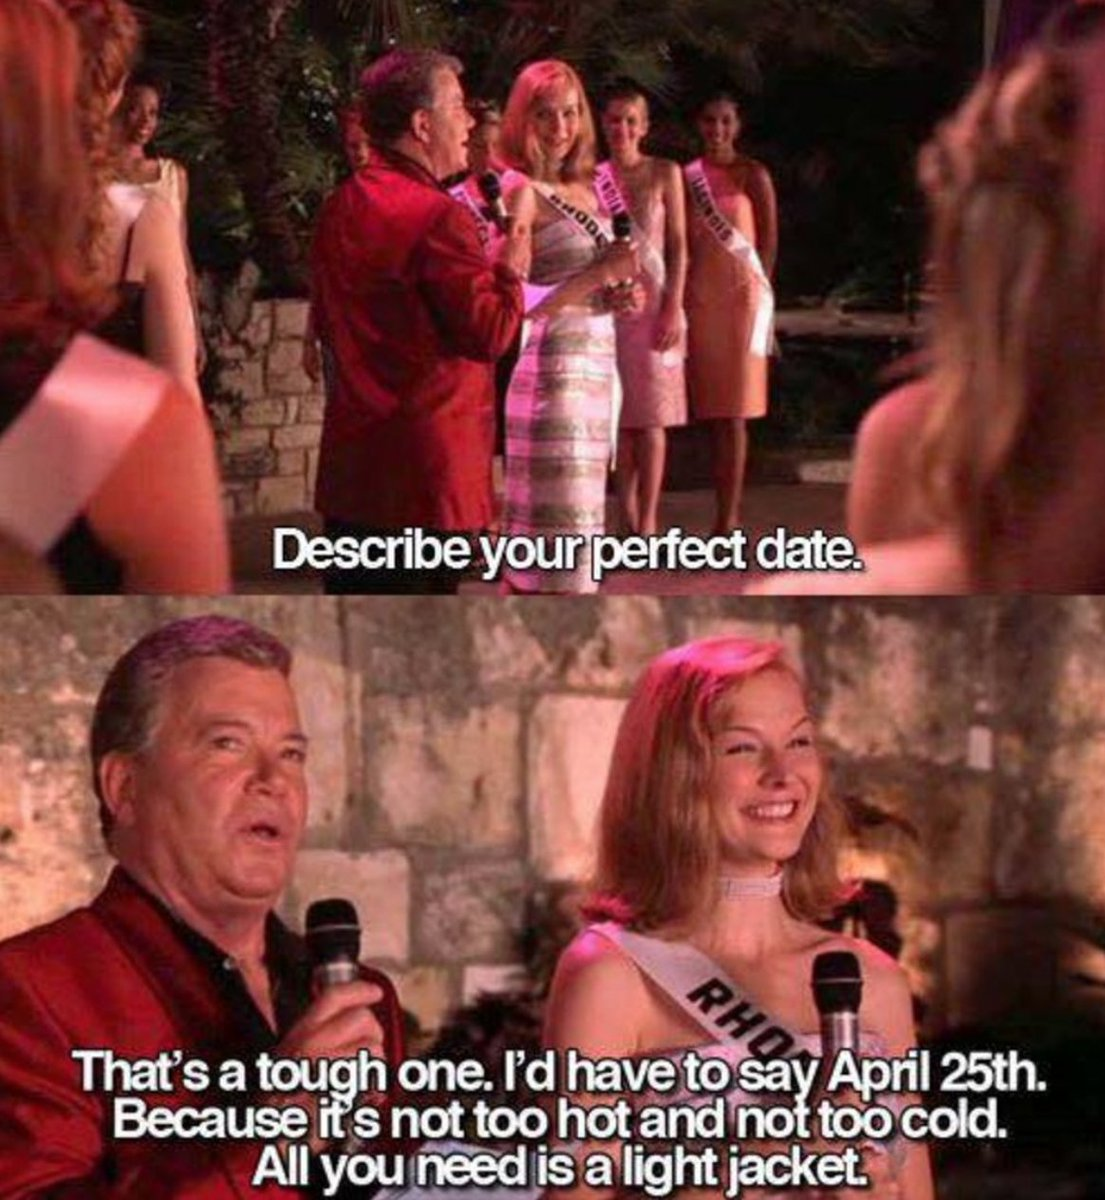 Today's April 25th — the perfect date. https://t.co/UDJ0p5I3dO